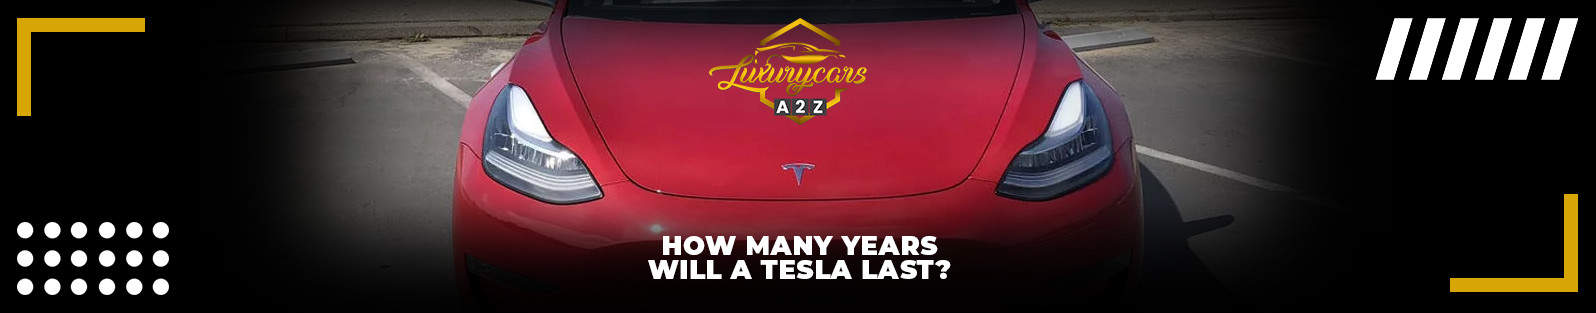 How many years will a Tesla last?